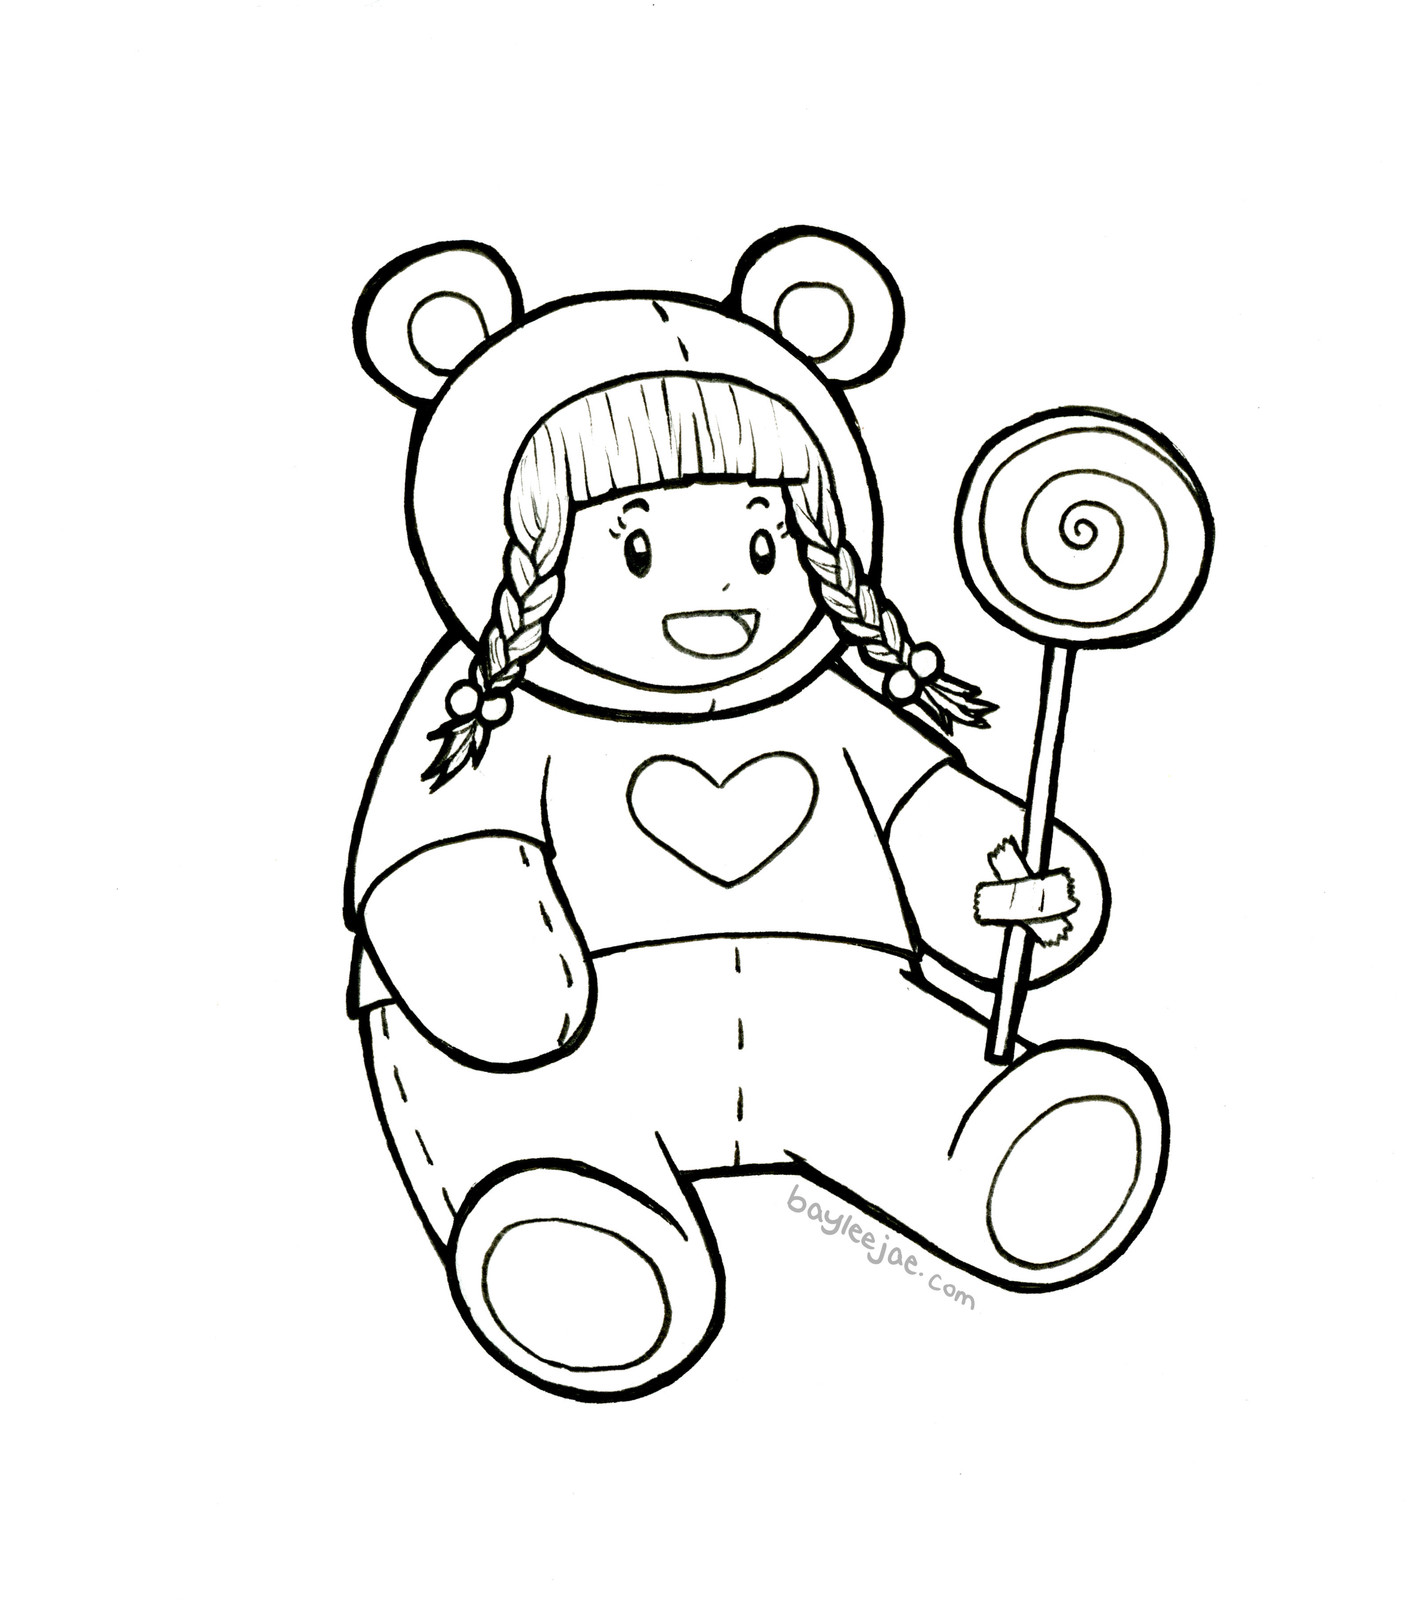 baylee jae coloring pages - photo#24